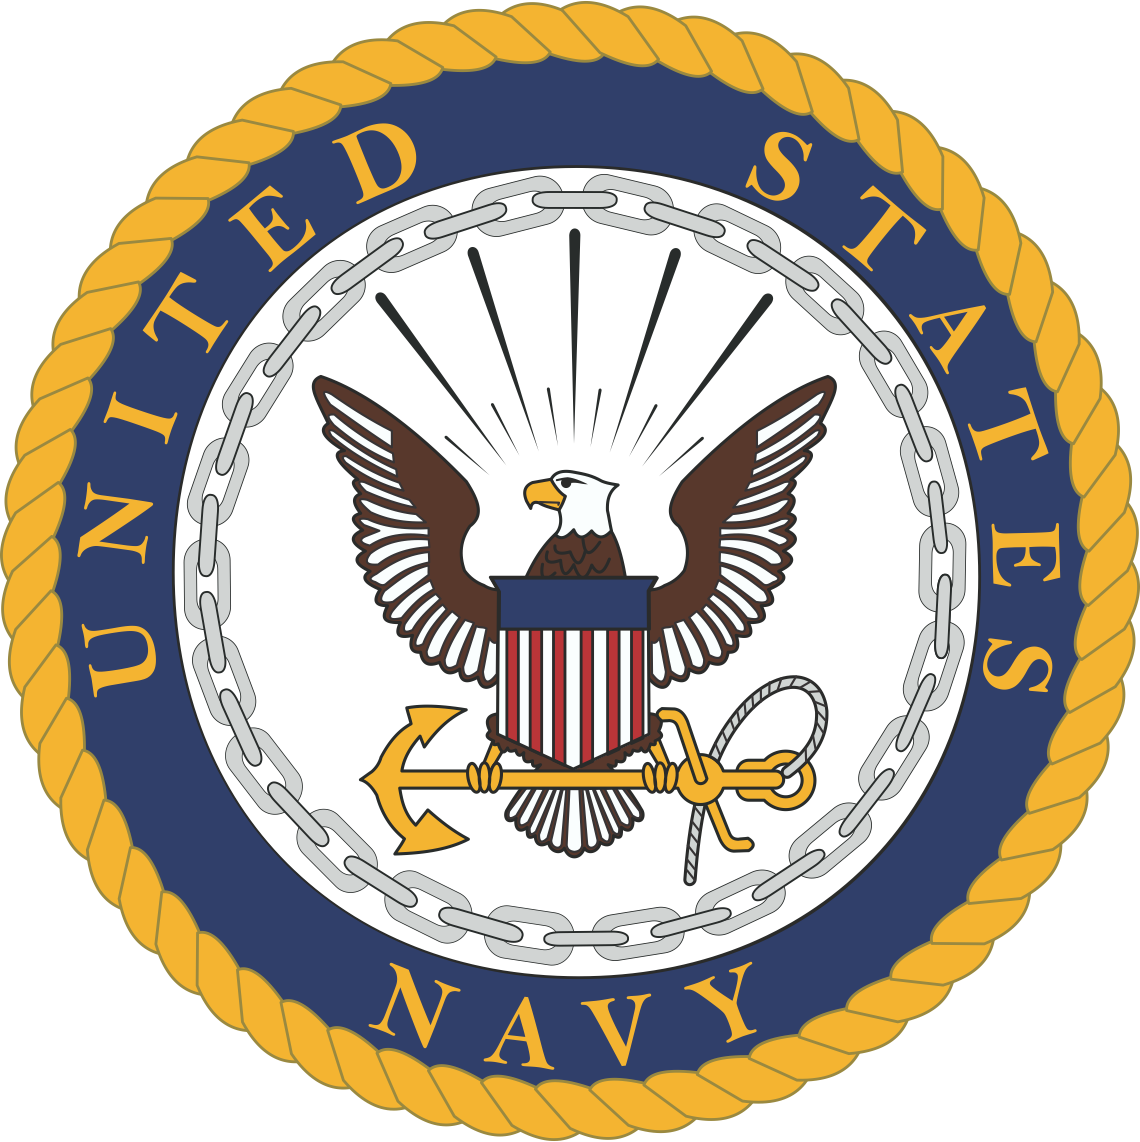 library Military logos united states. Navy clipart emblem.